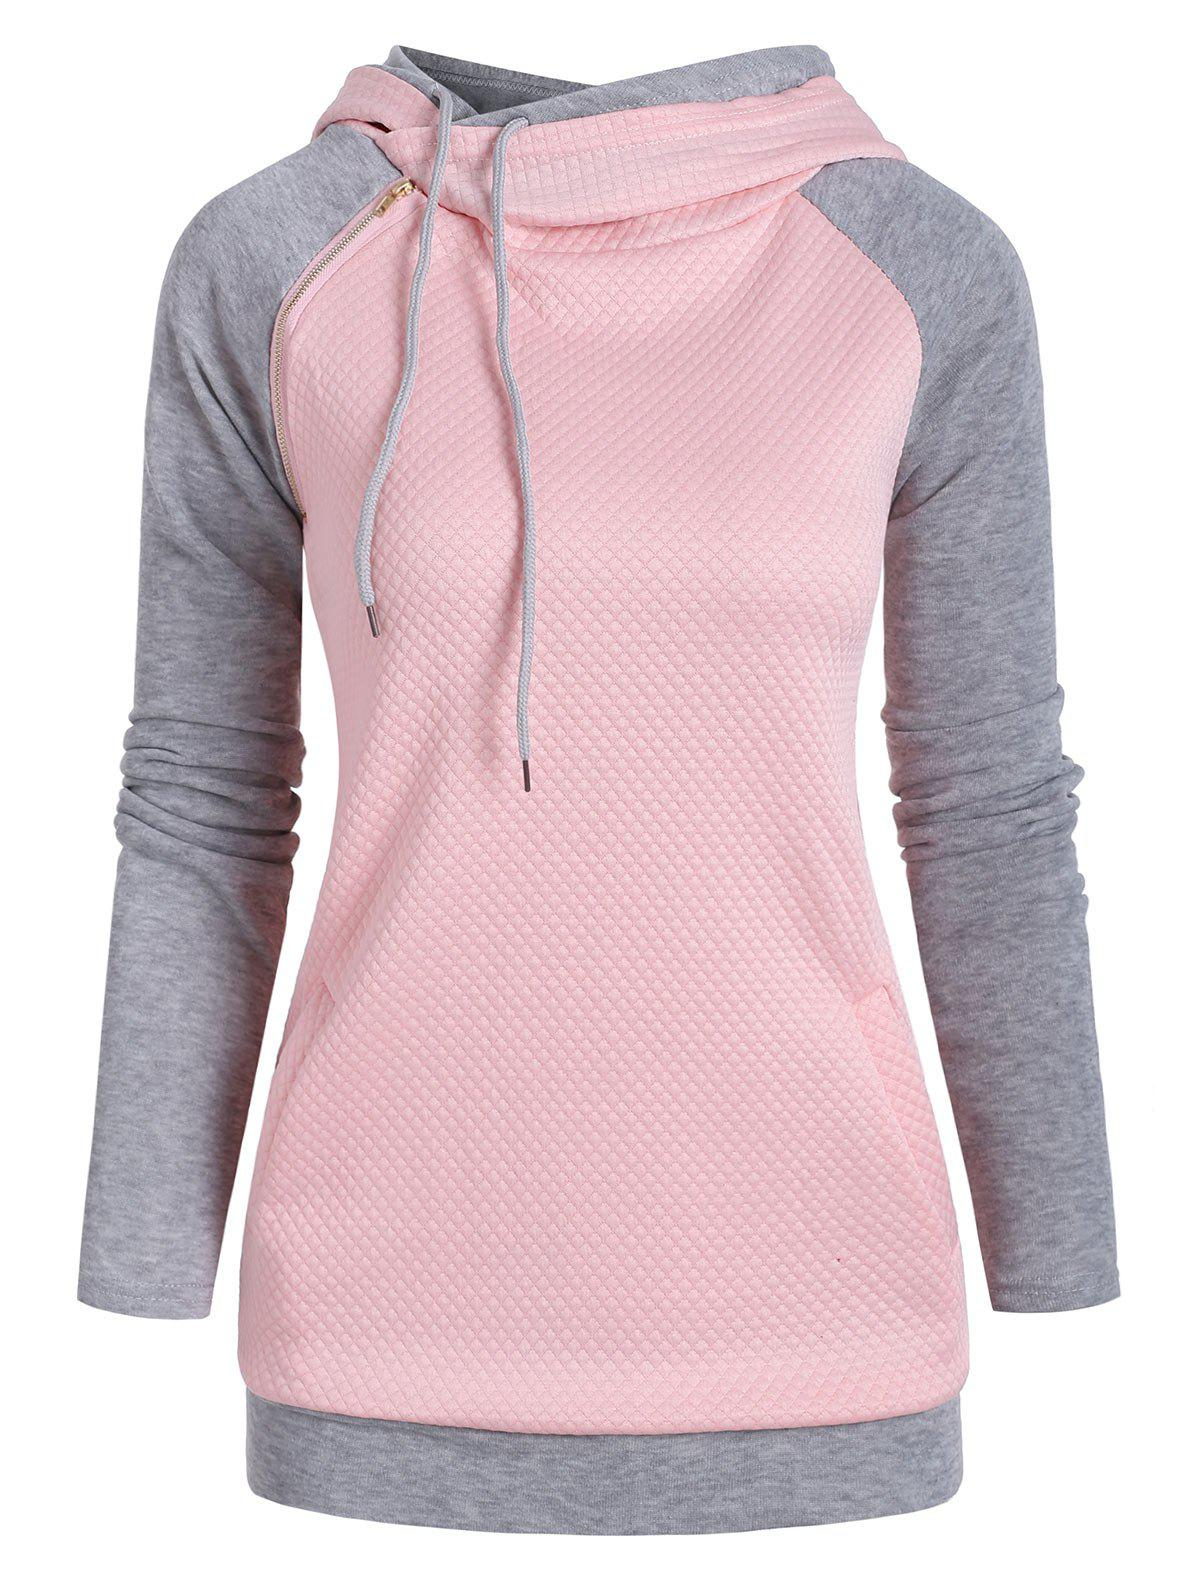 Fashion Heathered Textured Zipper Embellished Drawstring Hoodie